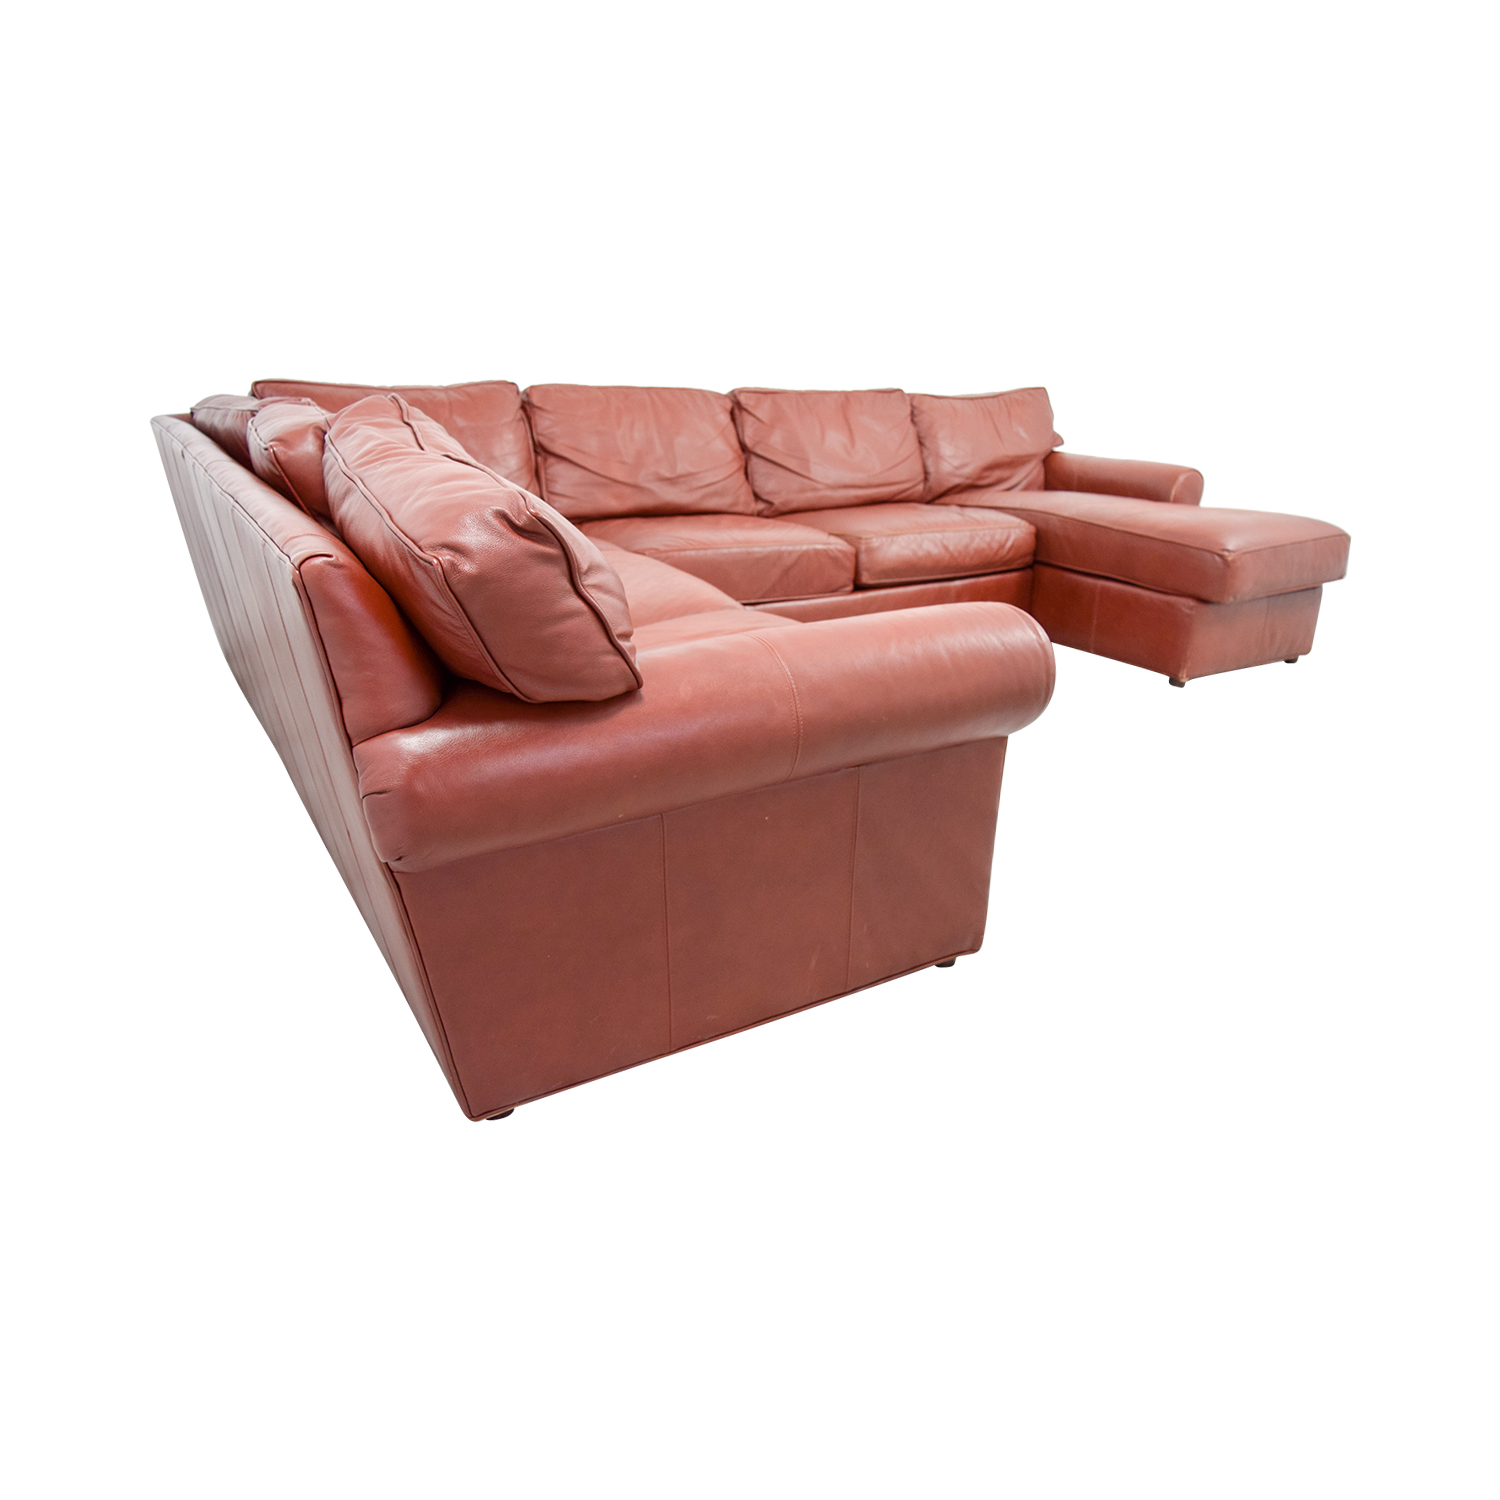 Ethan Allen Ethan Allen Burgundy Leather Sectional with Lounger